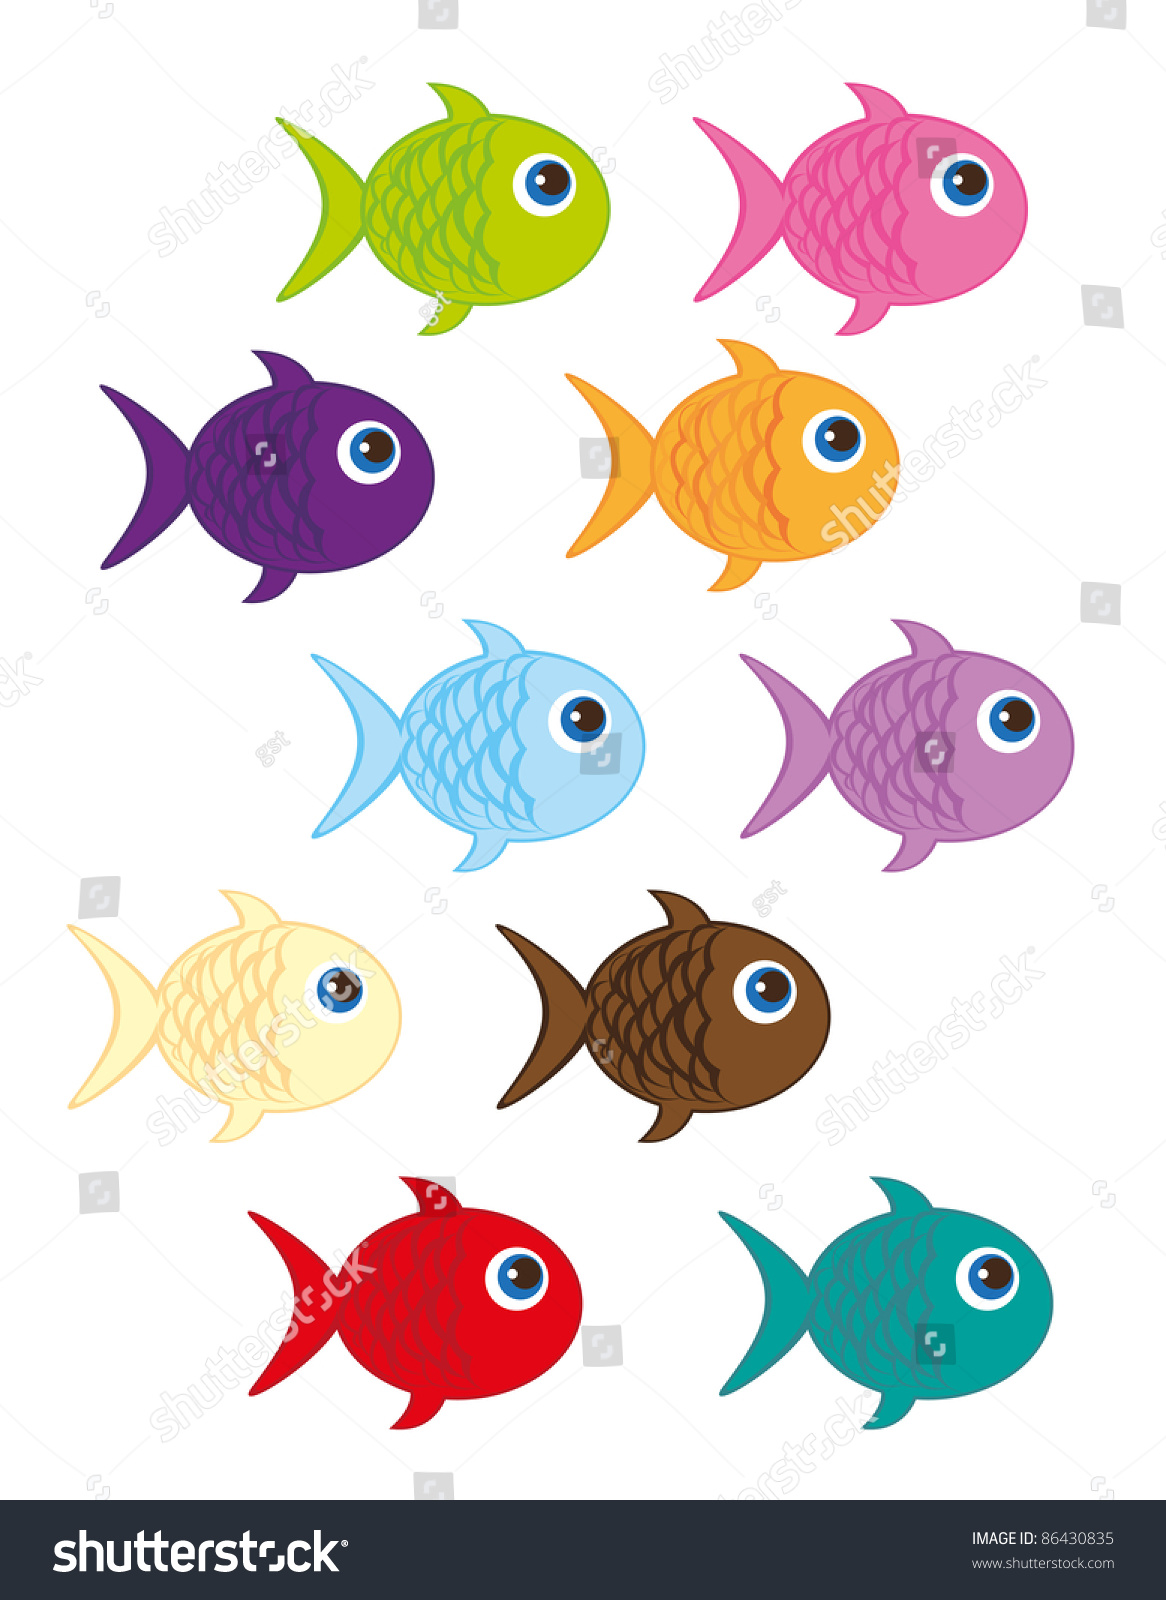 Pin Cute Cartoon Fish Pictures On Pinterest